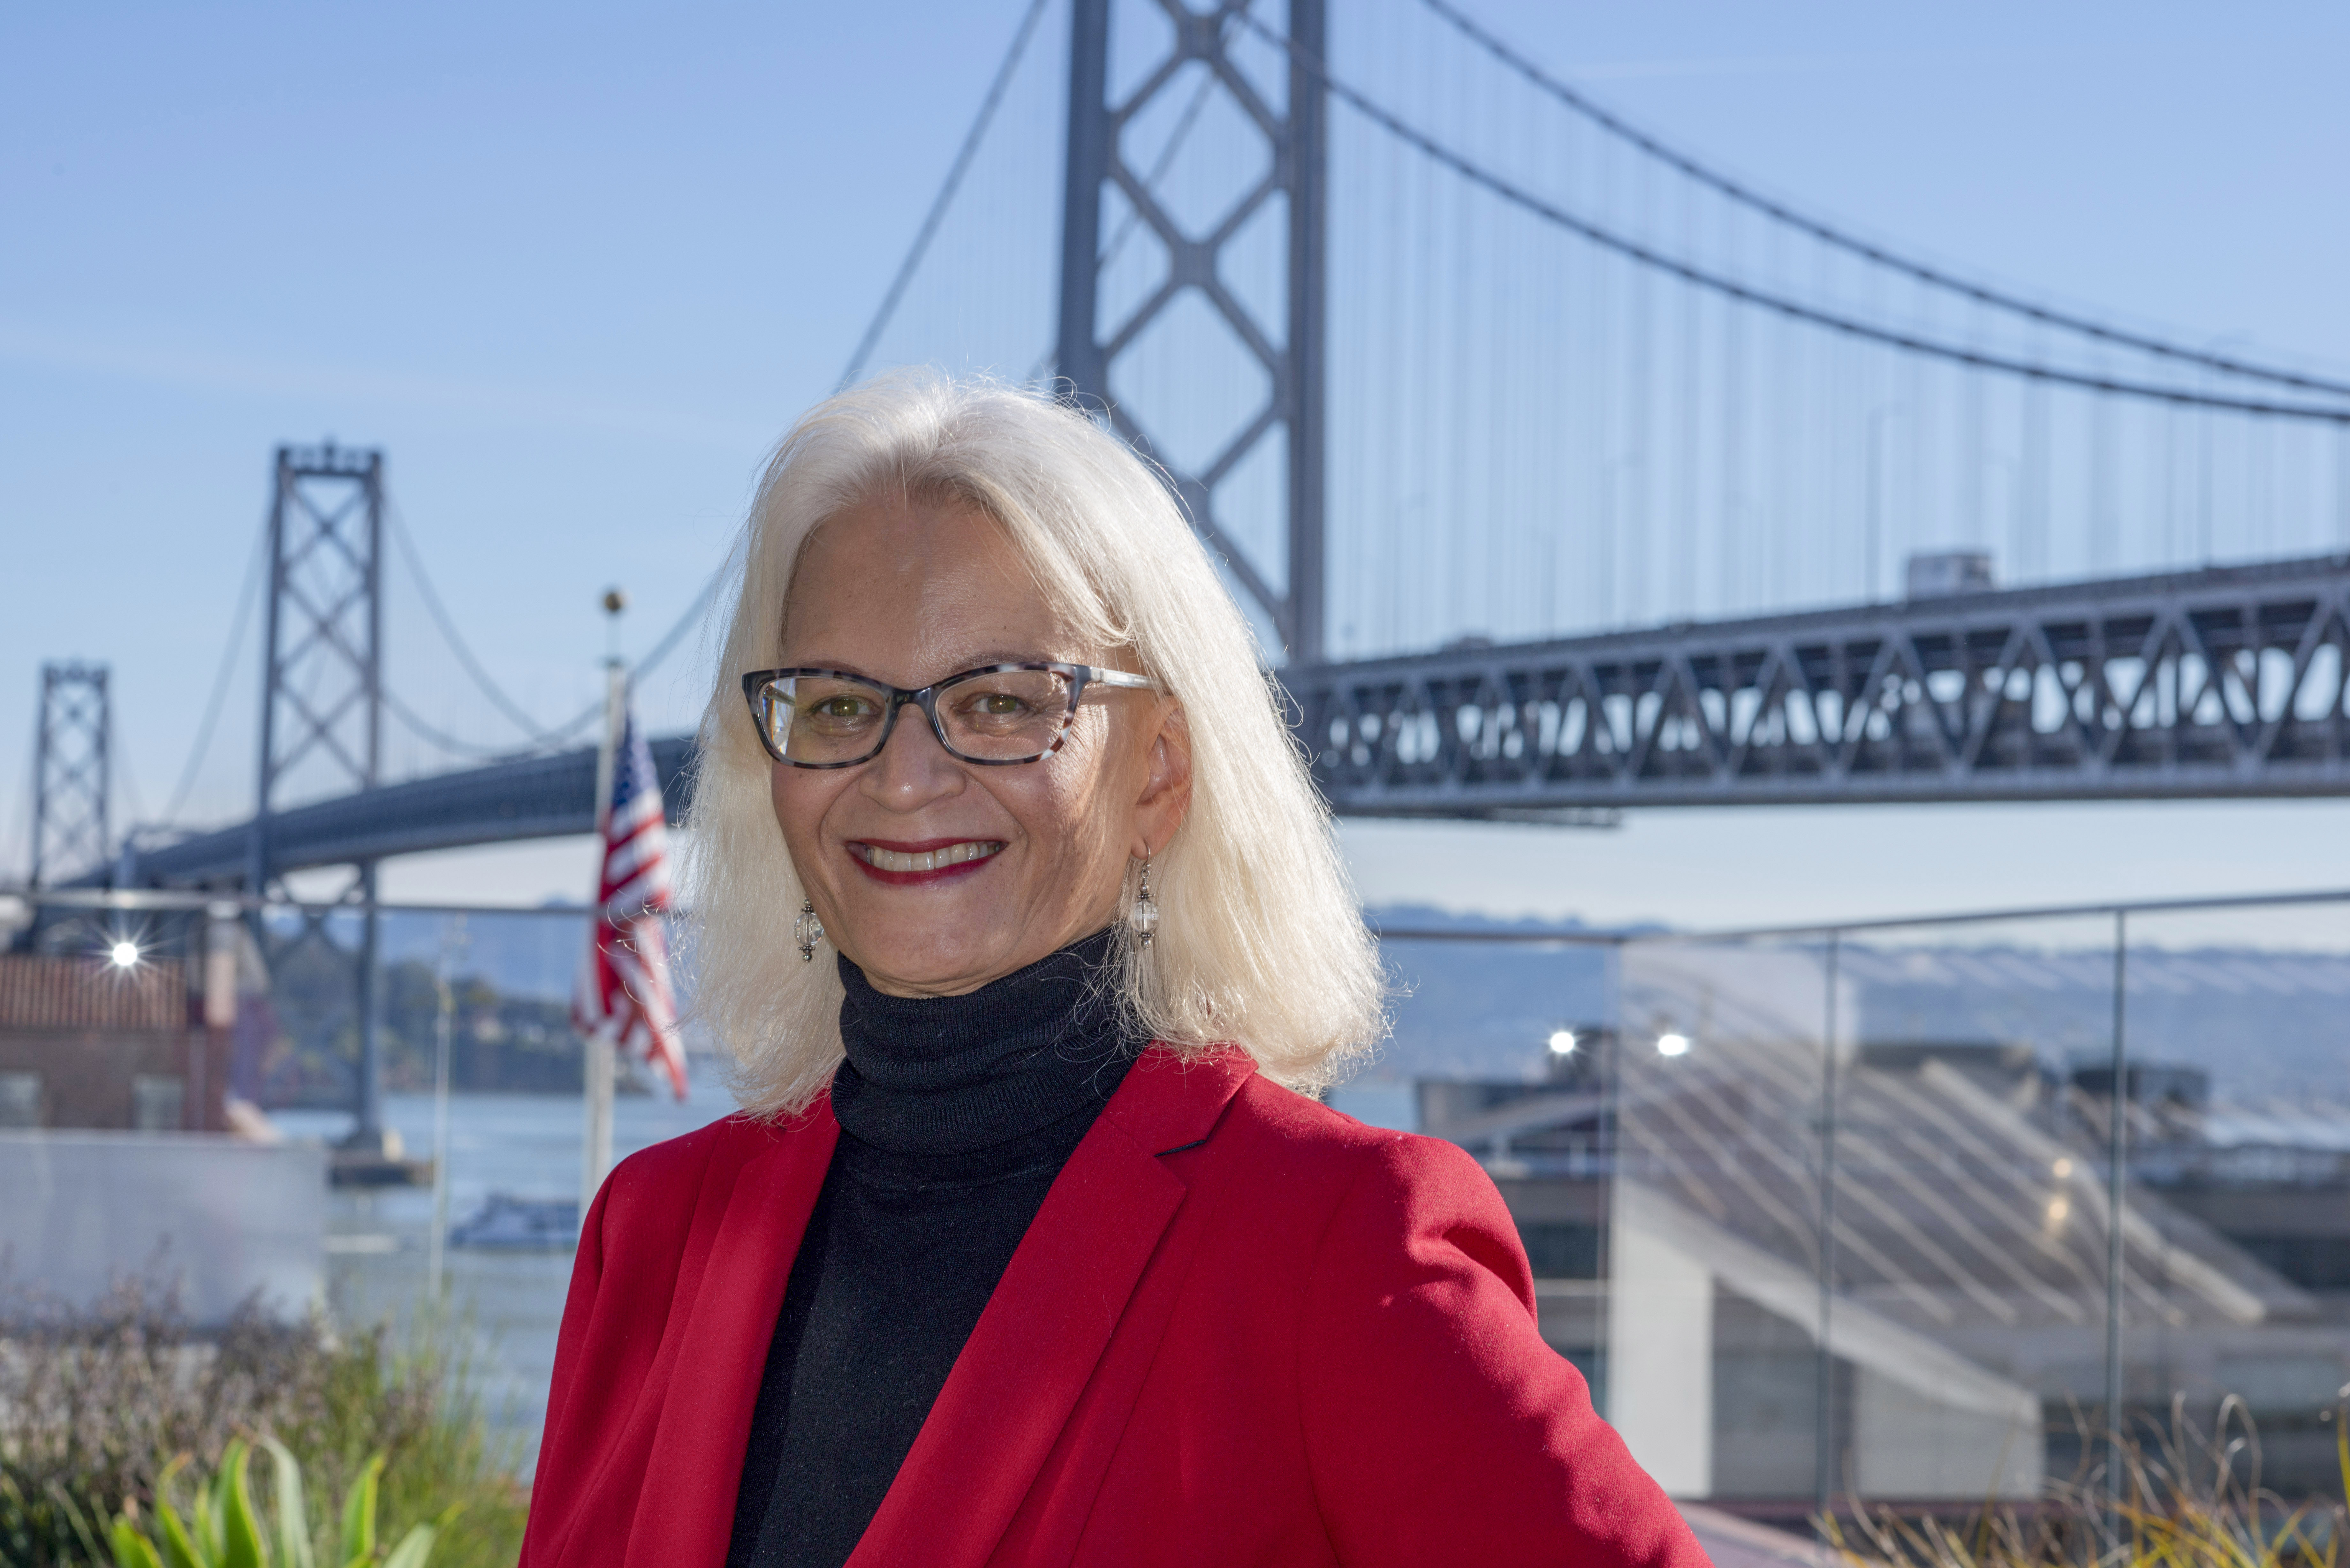 Therese McMillan wearing red blazer in front of Bay Bridge